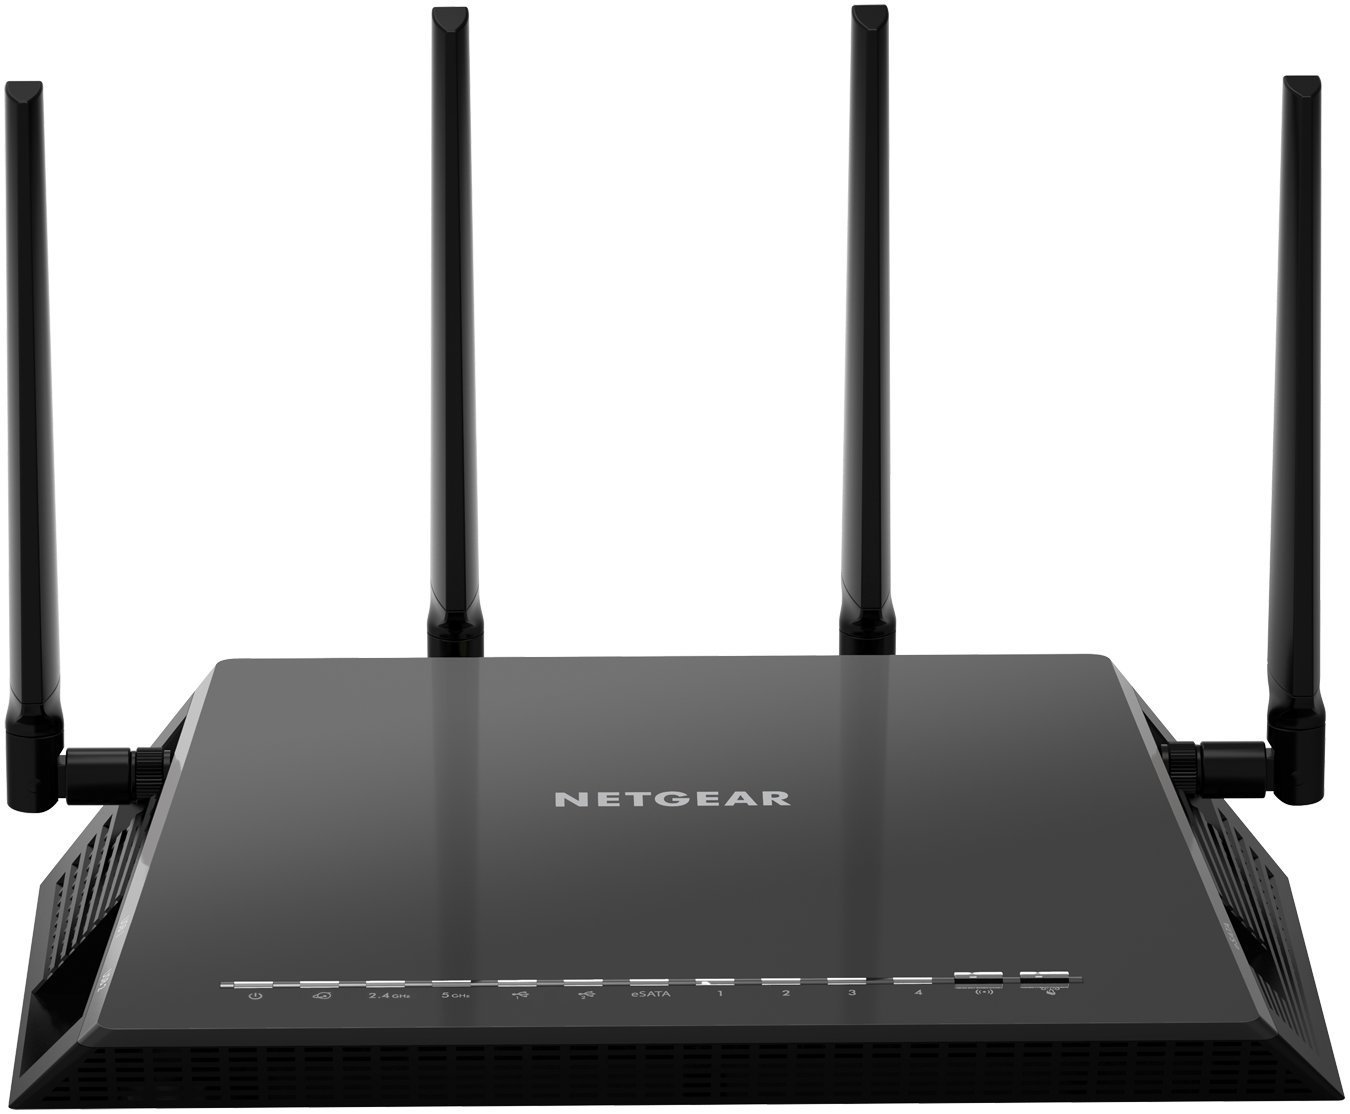 Netgear Nighthawk X4 black friday & cyber monday deals